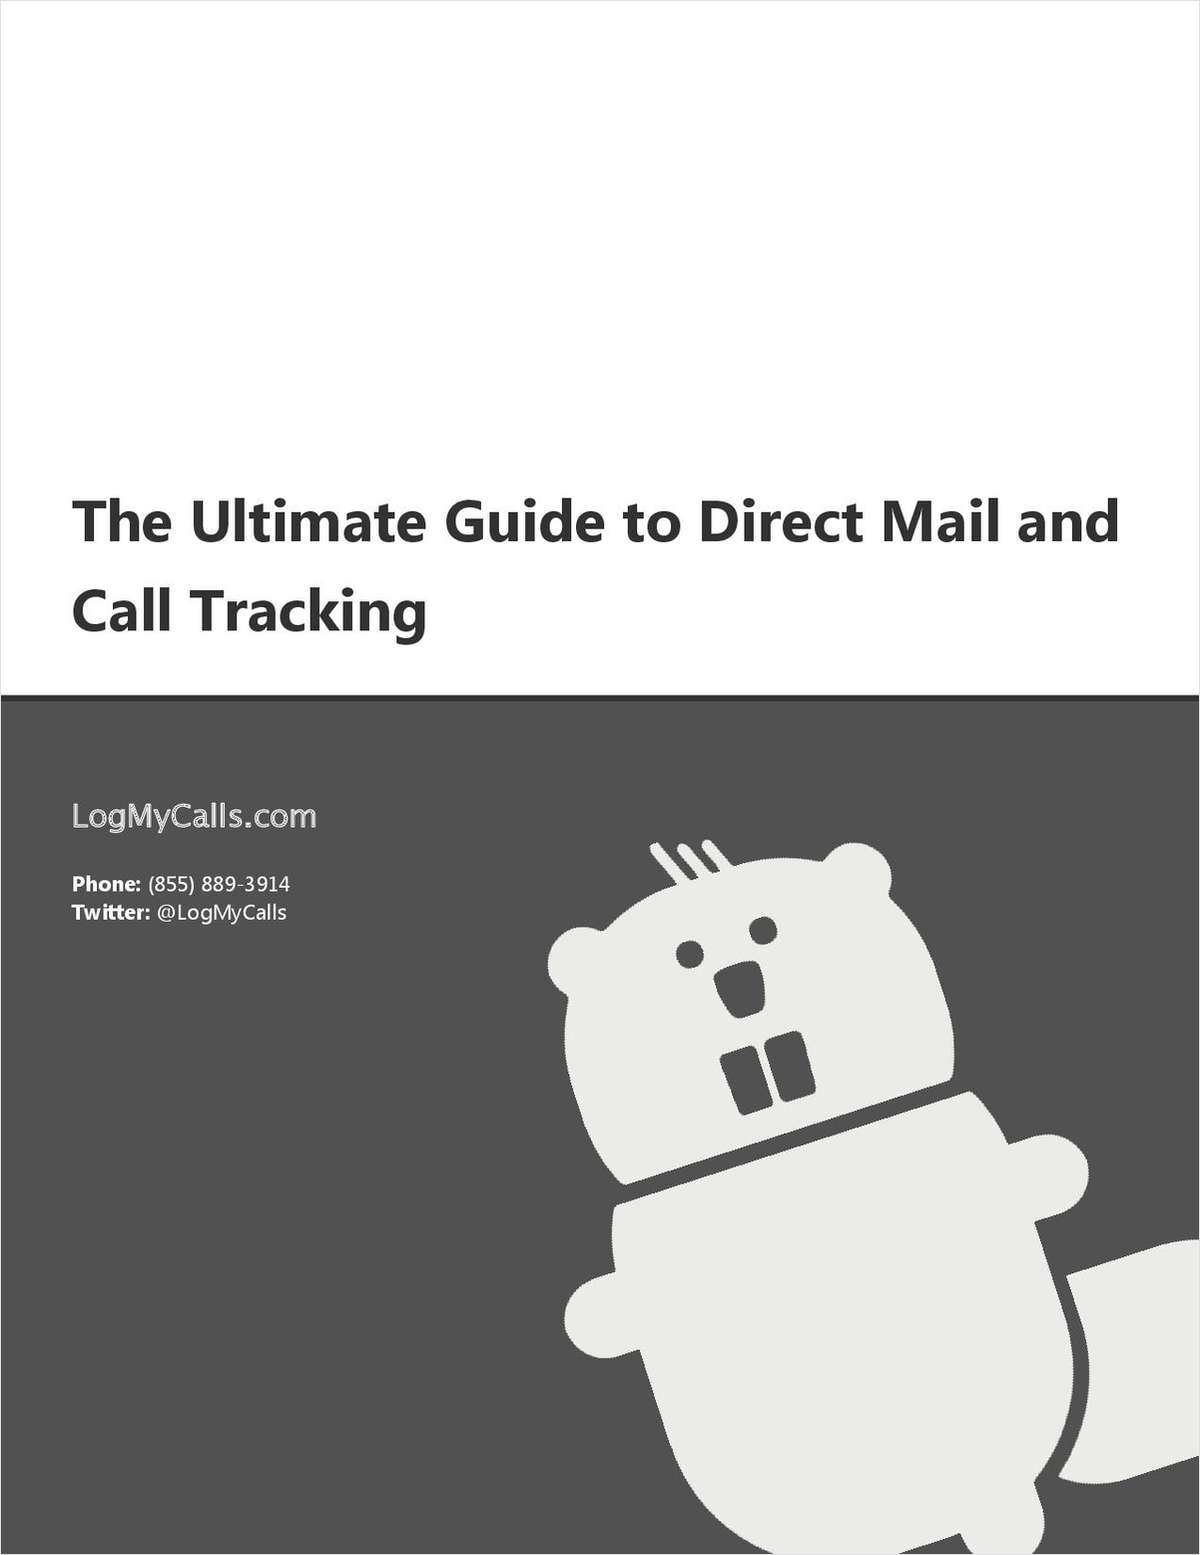 The Ultimate Guide to Direct Mail and Call Tracking